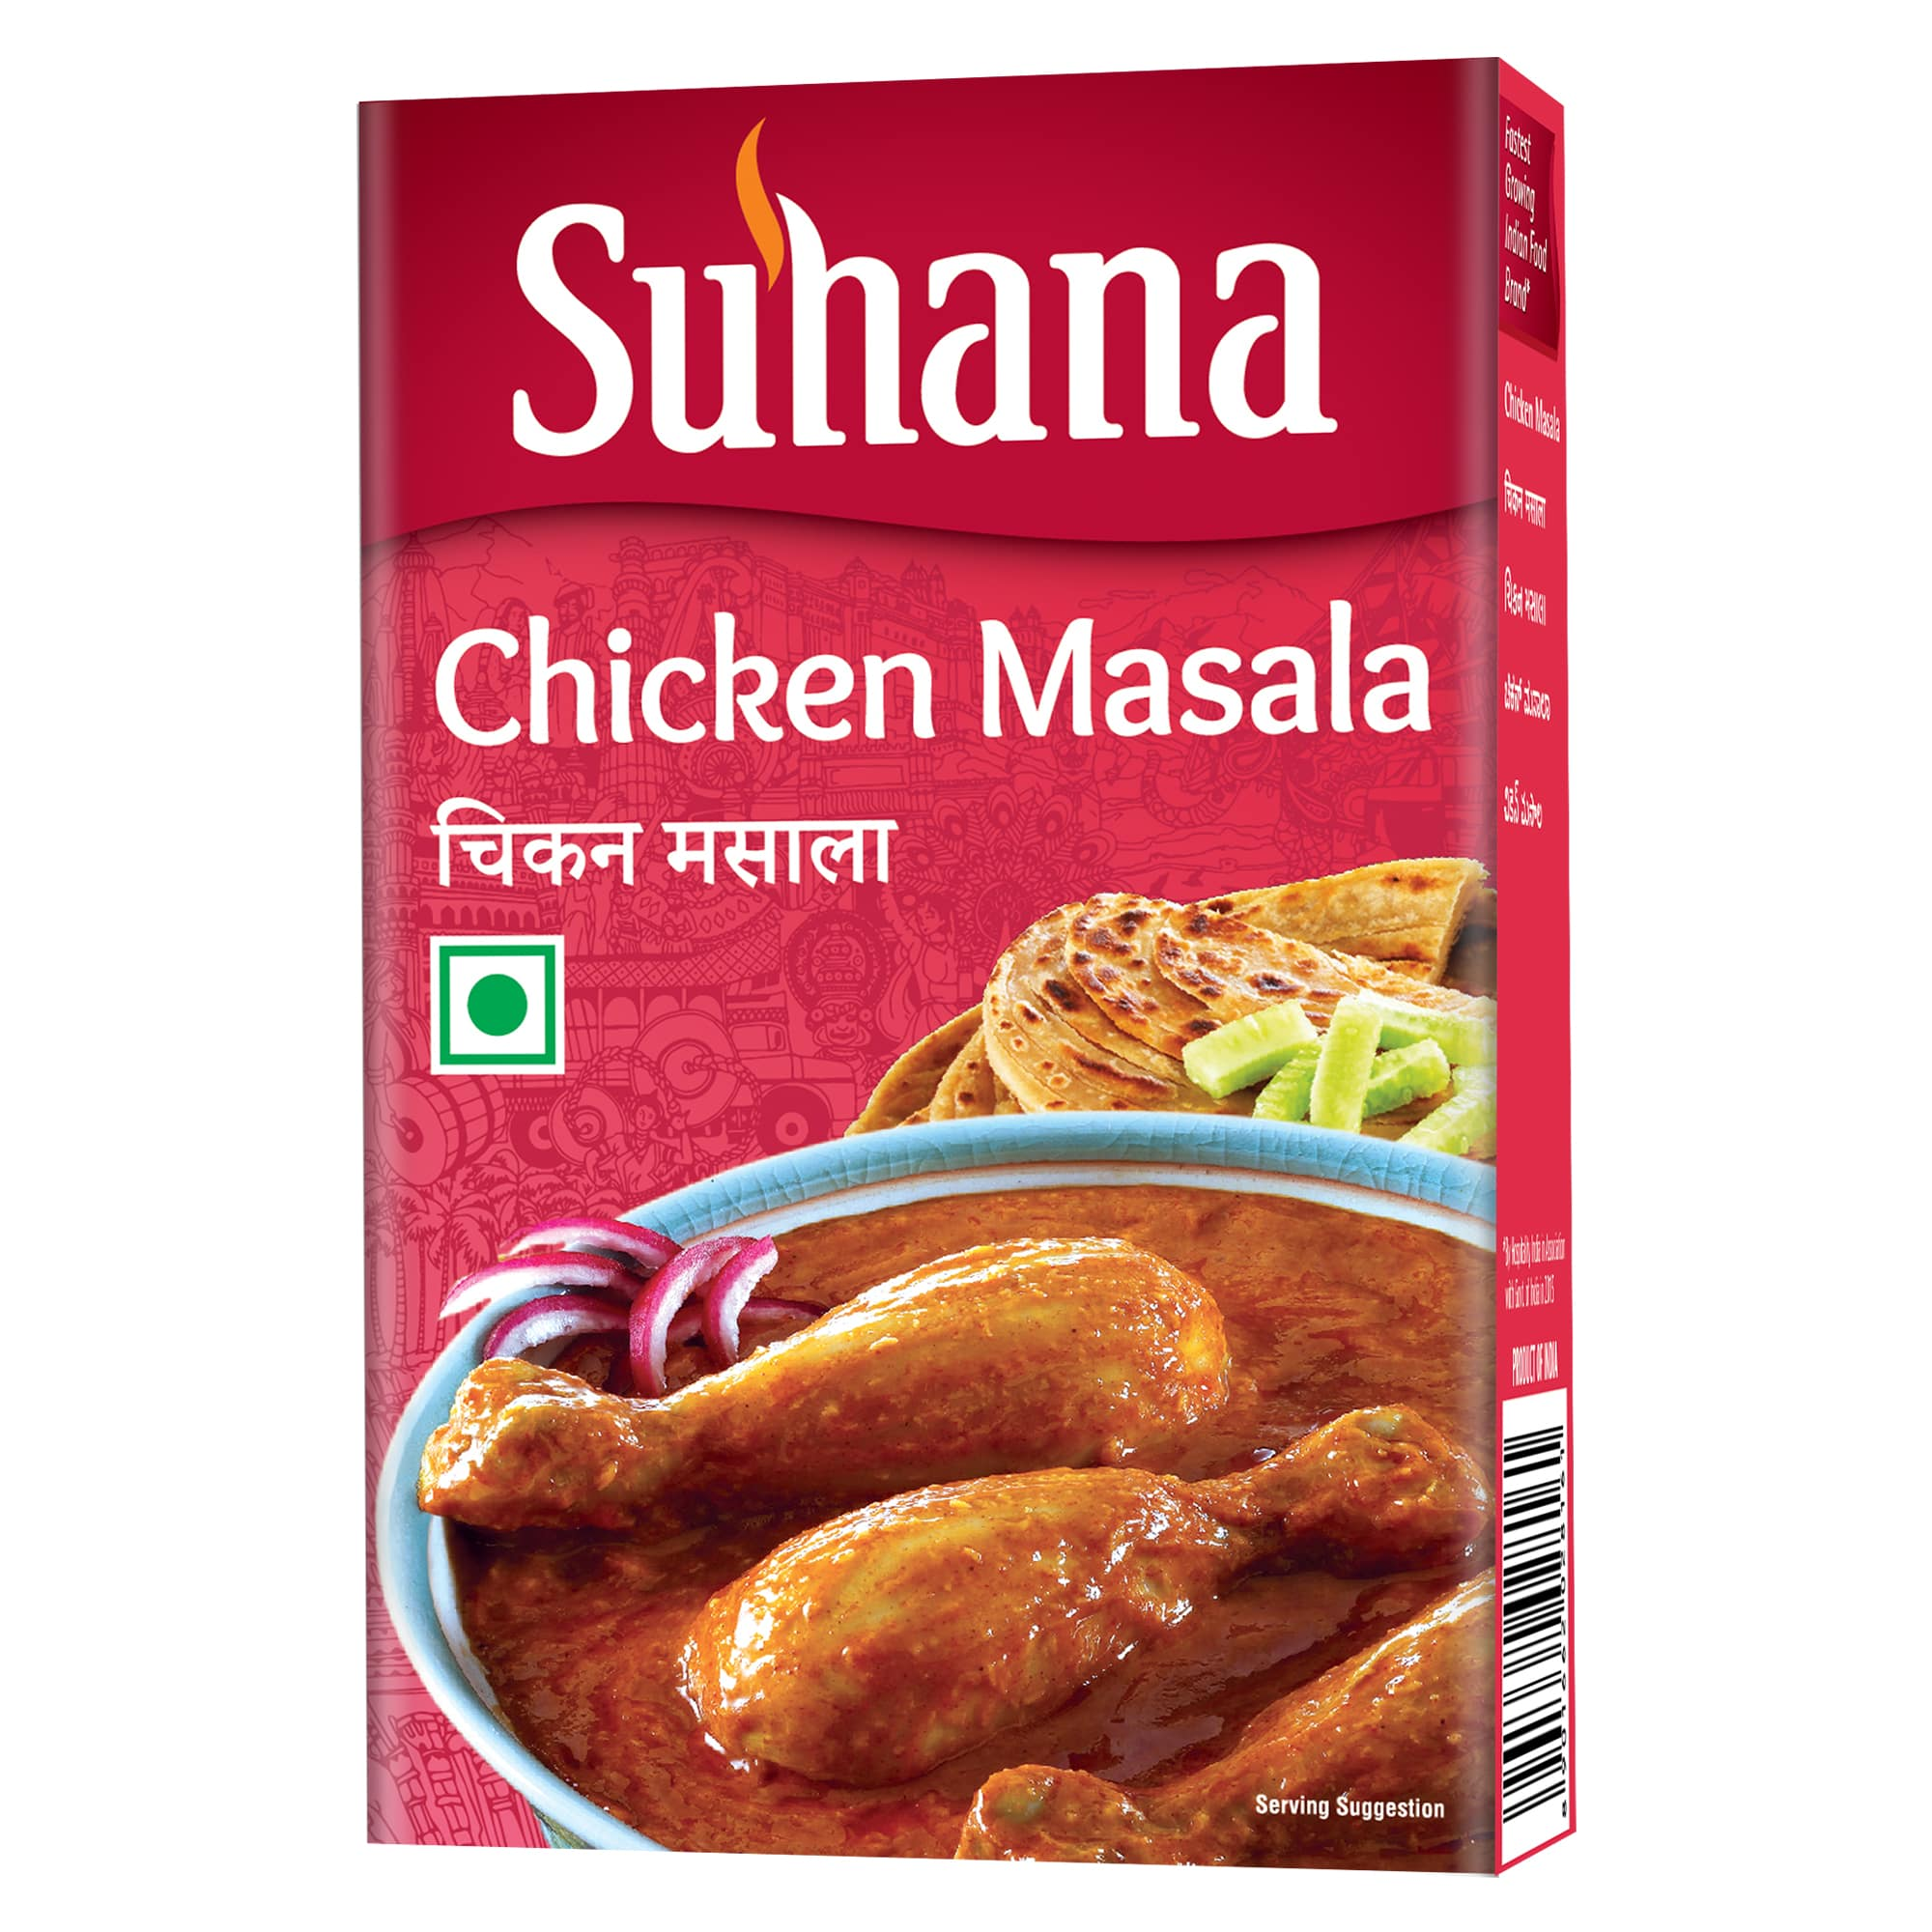 Suhana Chicken Masala Box